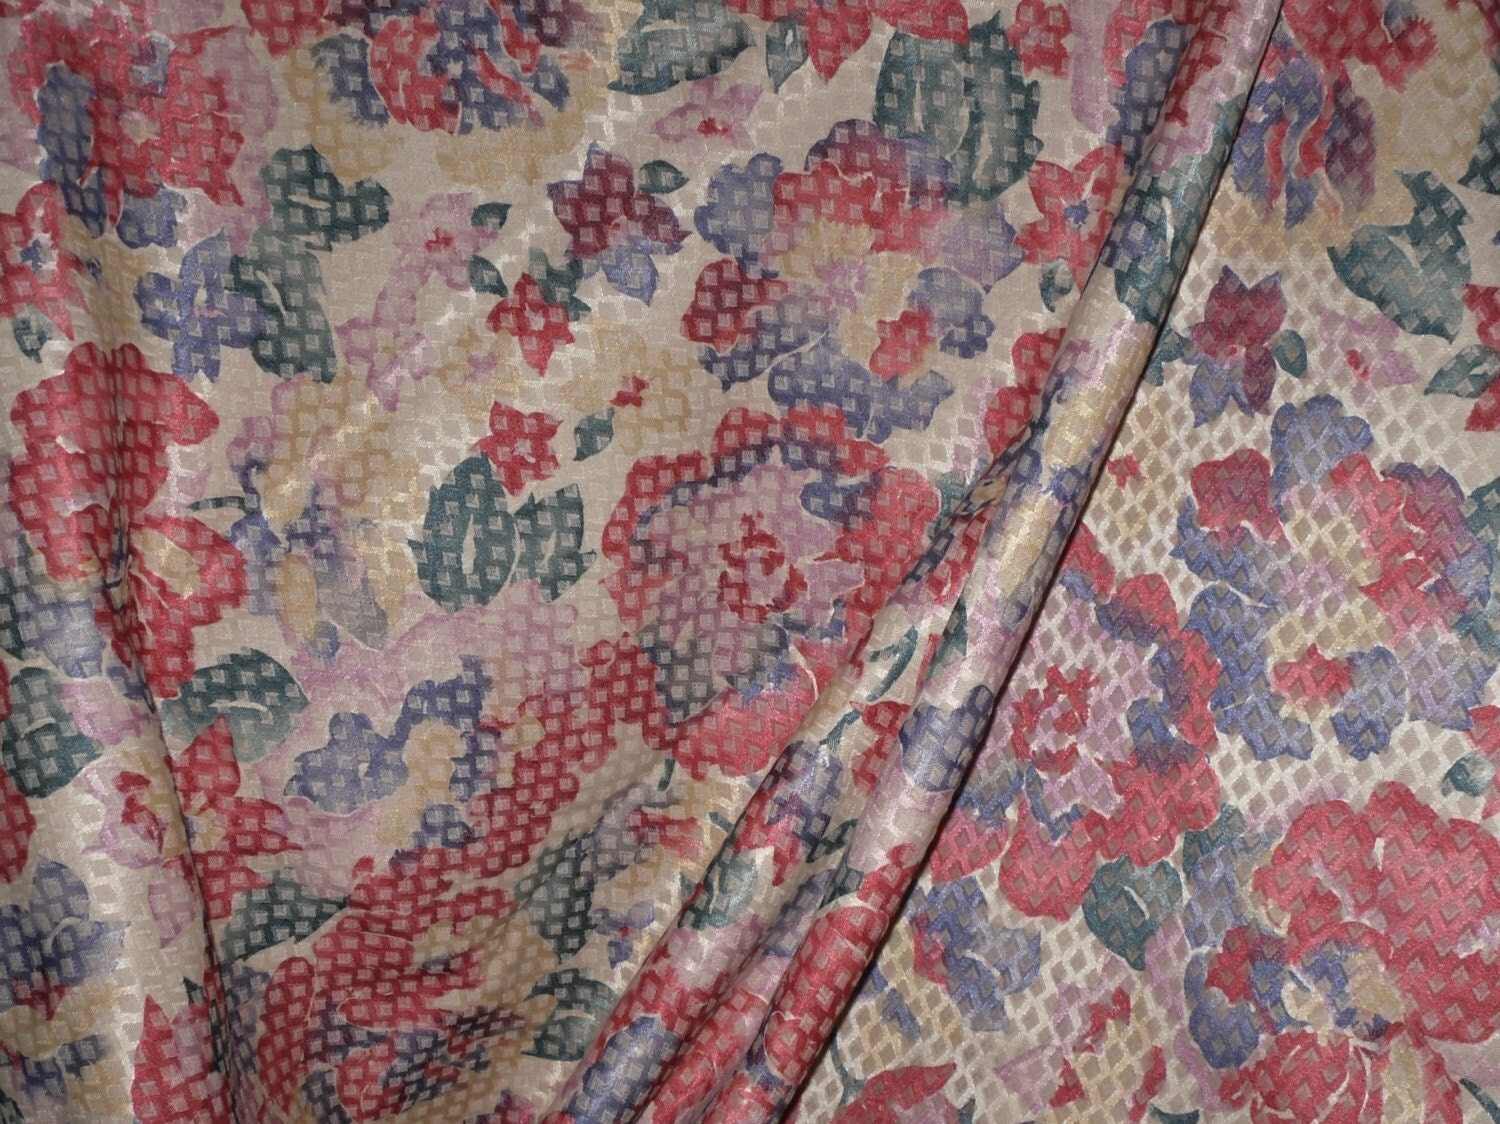 Vintage Screen Printed Fabric Old Fashioned Flowers On - retro home decor fabric by the yard